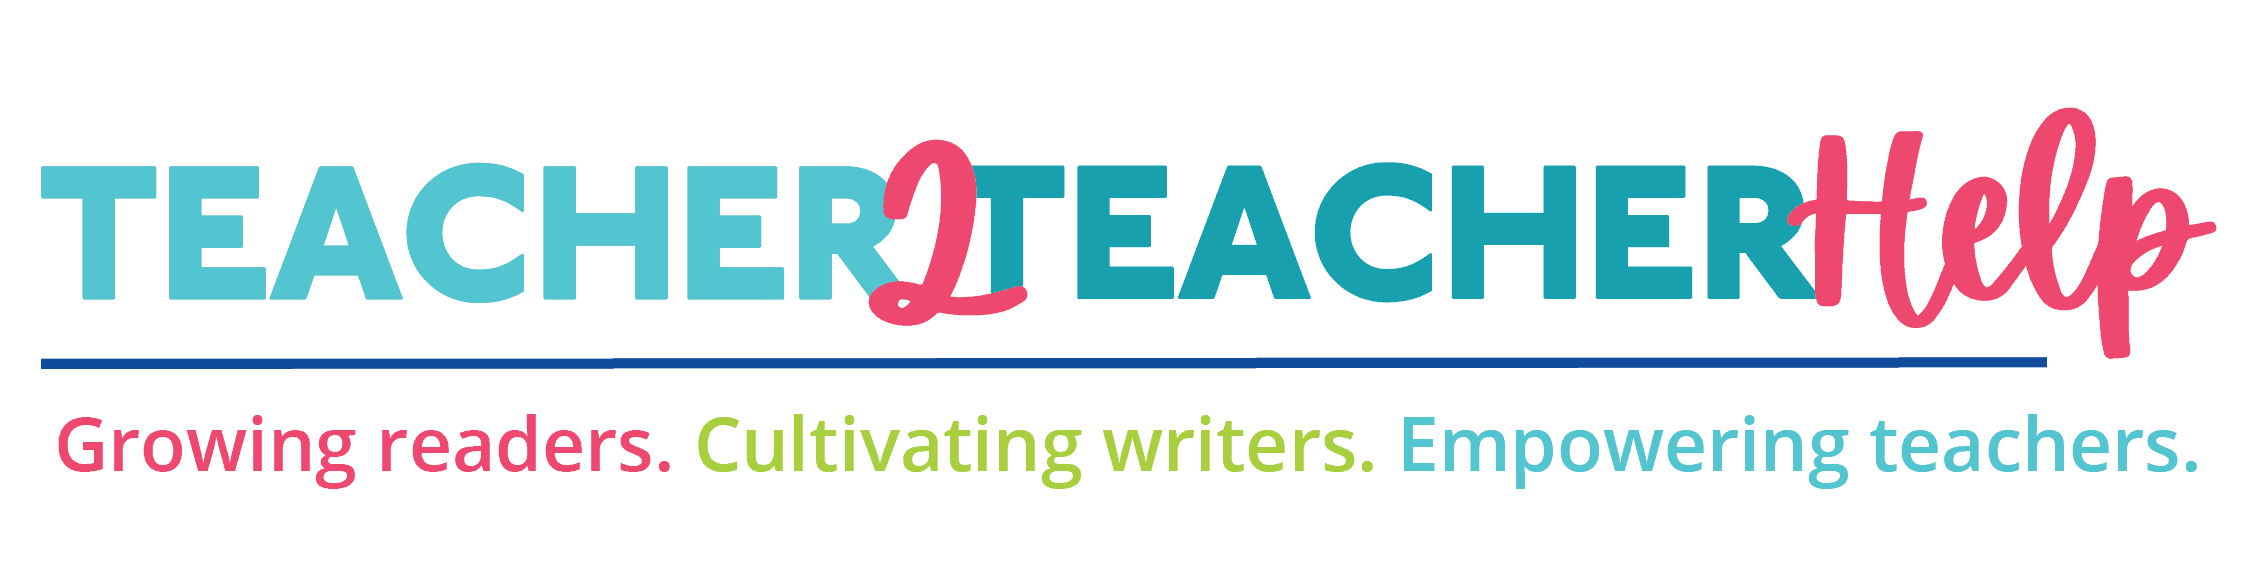 Teacher2TeacherHelp